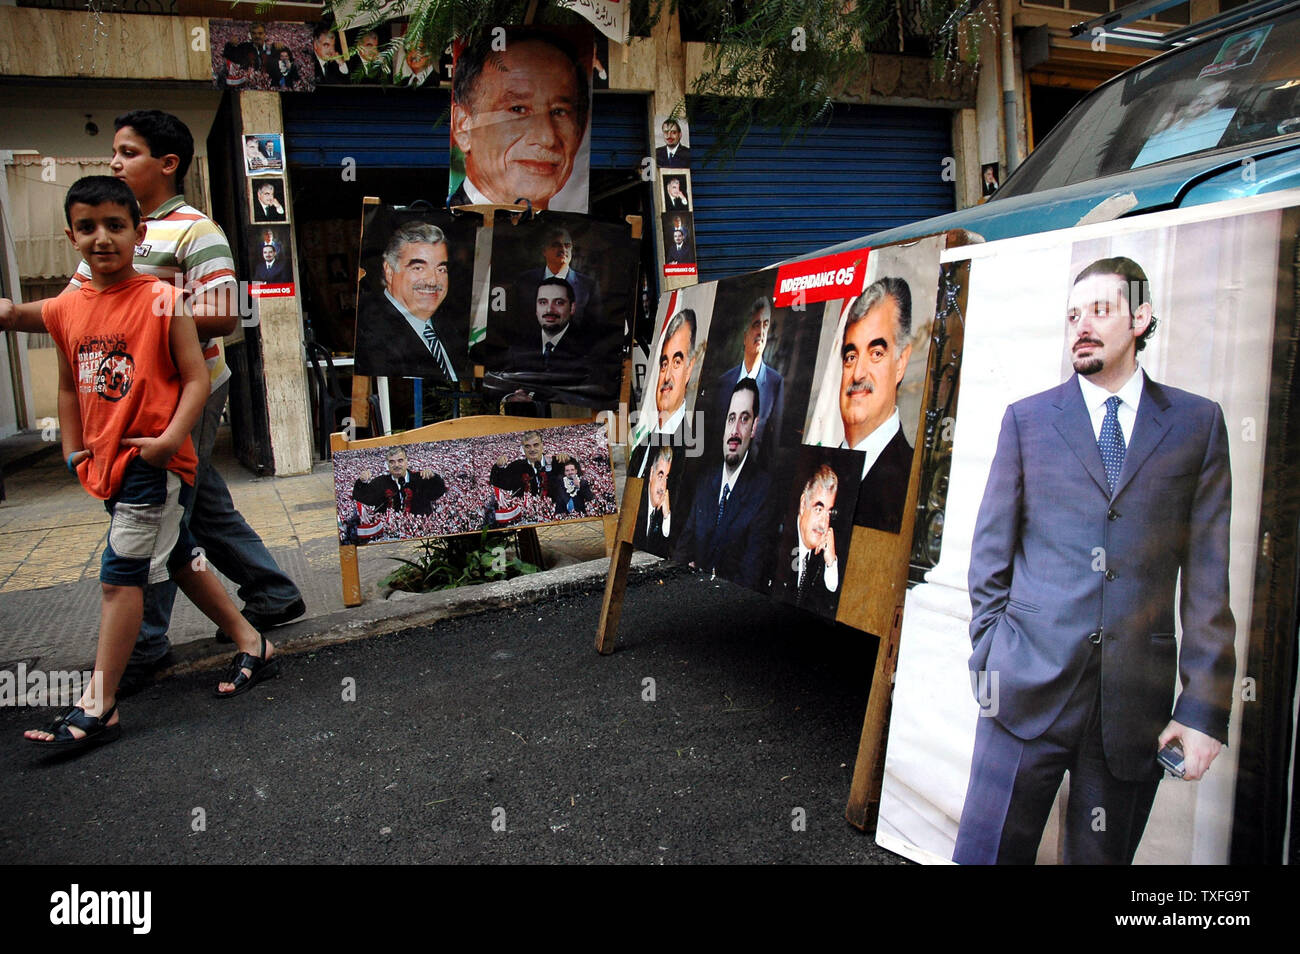 Lebanese kids walk past campaign posters for Saad Hariri, son of the popular slain ex PM Rafik Hariri, in Beirut the evening before parliamentary elections are due to take place on May 28, 2005. The elections will be the first in thirty years to be held without the presence of Syrian troops in Lebanon.  It is typical of Lebanese politics that a relative of a popular leader should ride the wave of popularity into public office. (UPI Photo/Stewart Innes) Stock Photo